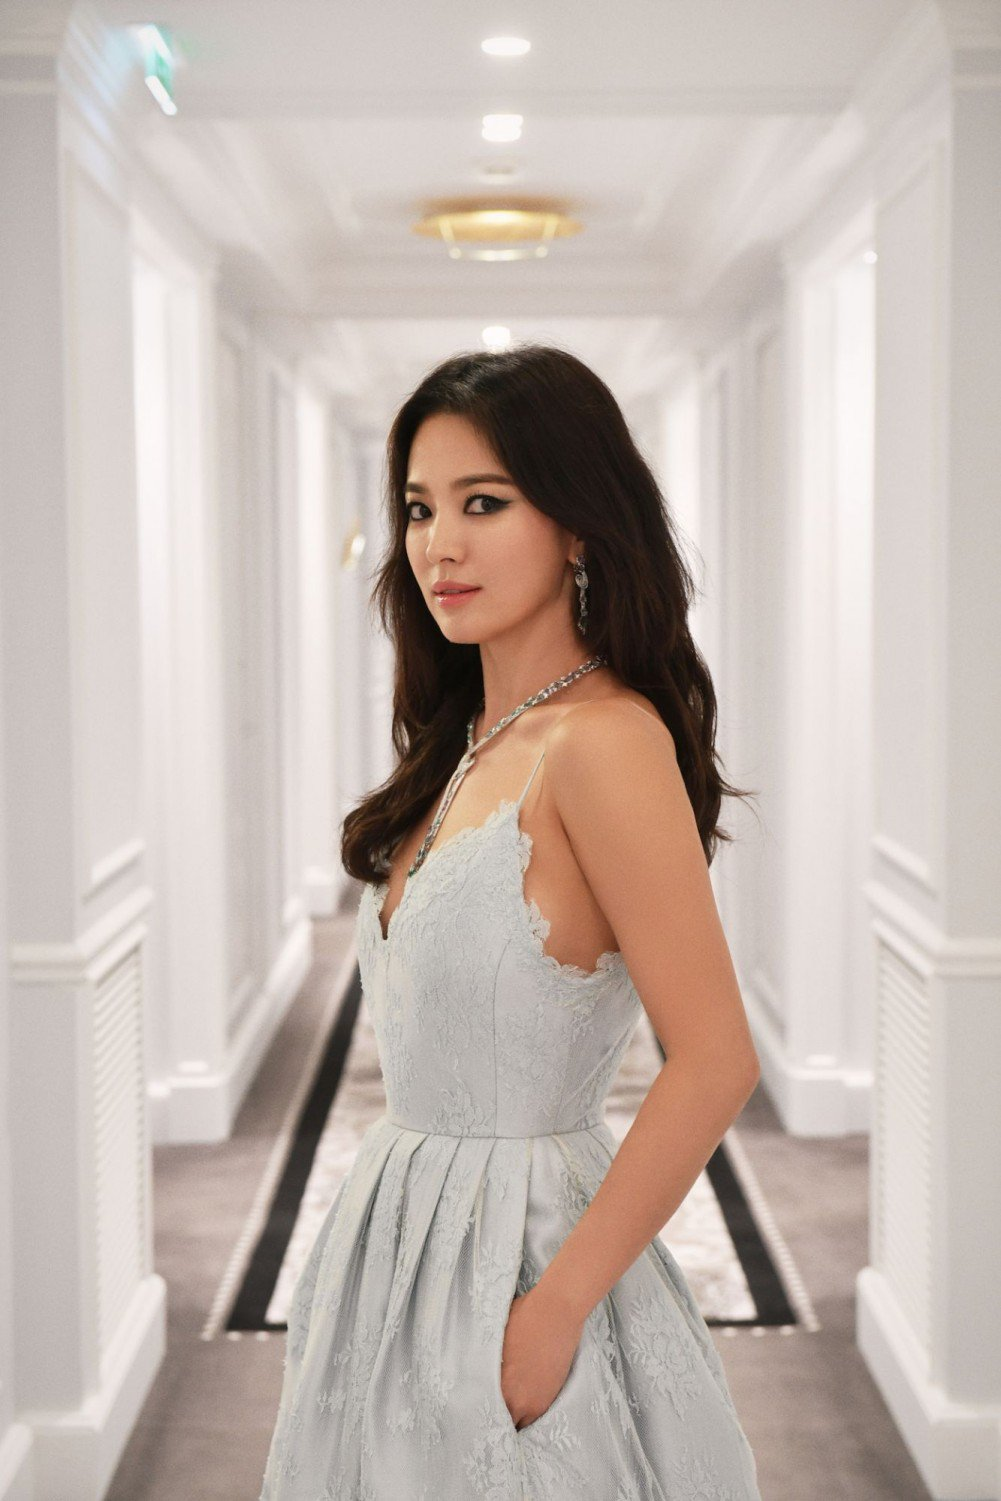 Song Hye Kyo gives her first interview after divorce | allkpop